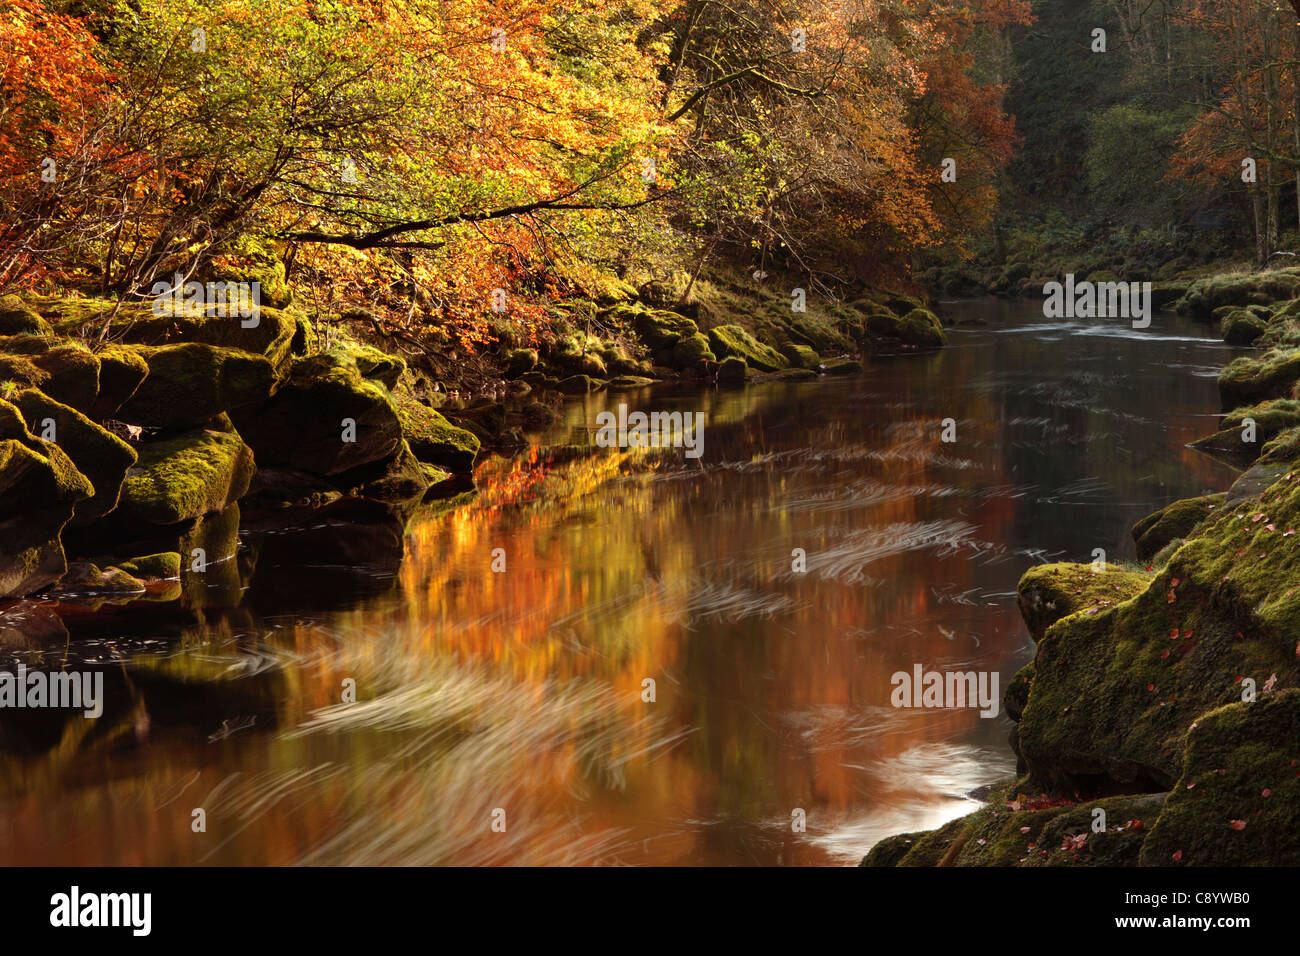 Ethereal light on the autumn foliage of Strid Wood in Wharfedale, Yorkshire - Stock Image